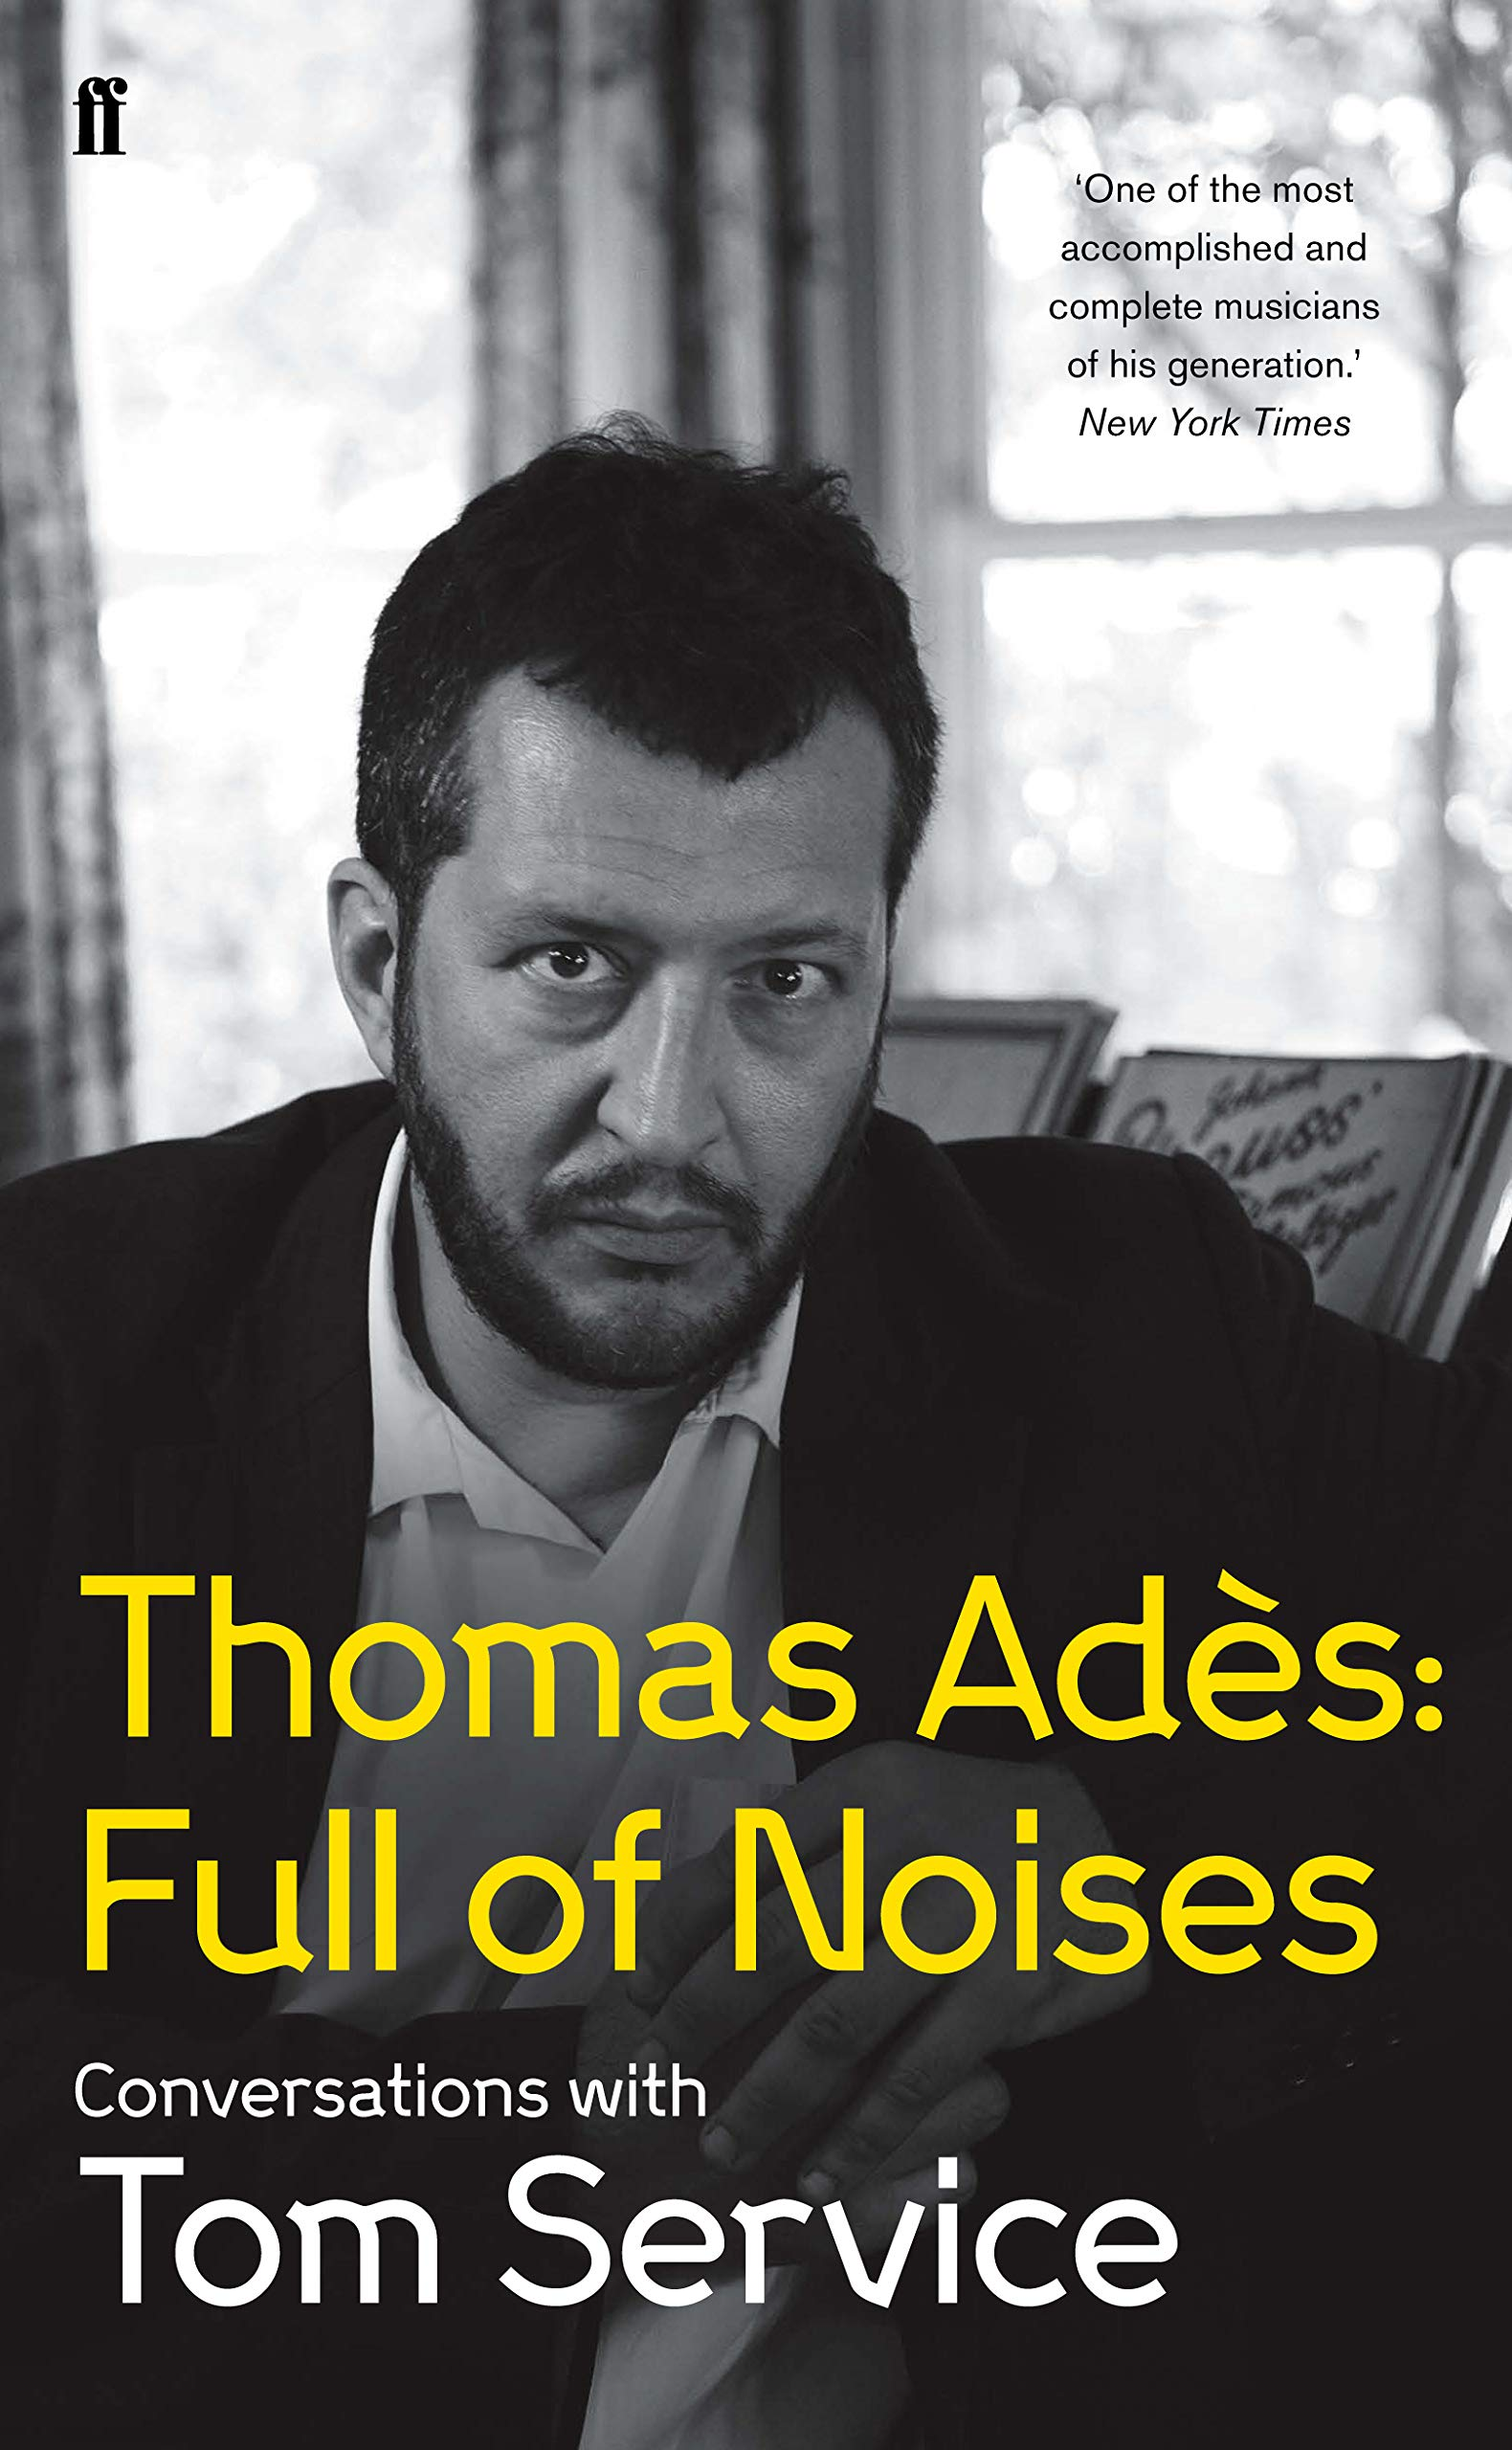 Thomas Adés: Full of Noises - Conversations with Tom Service